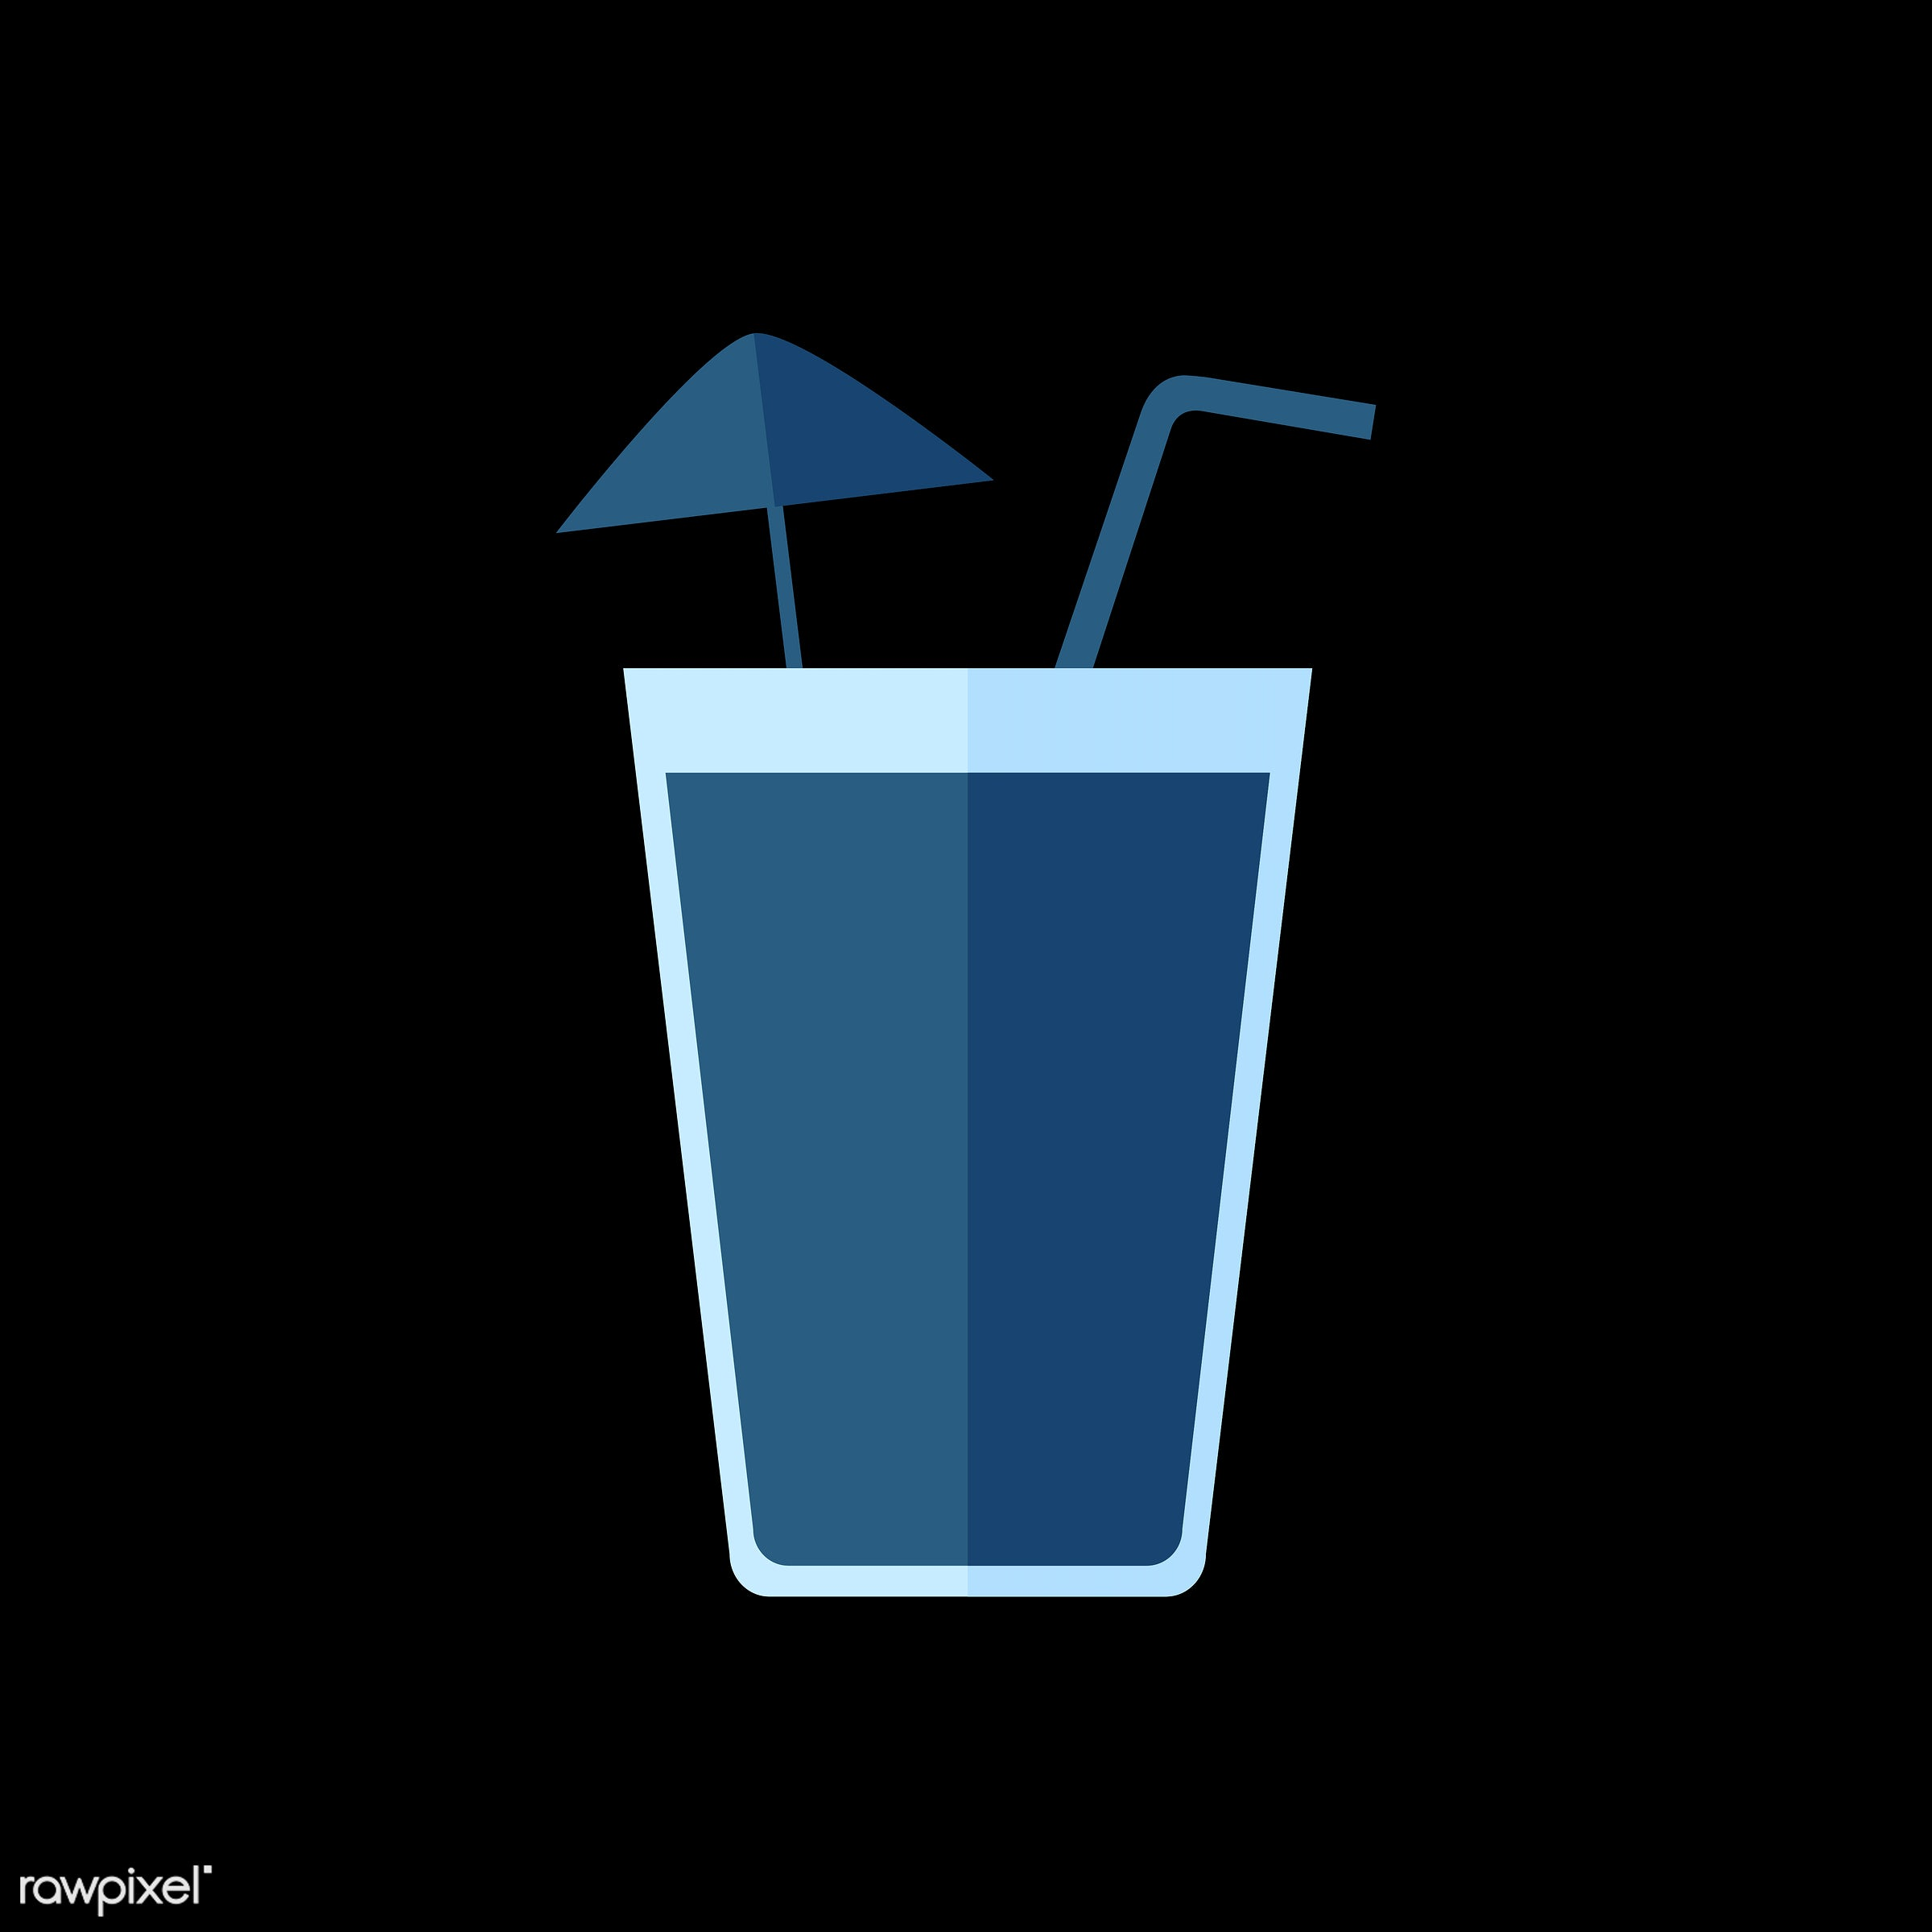 vector, graphic, illustration, icon, symbol, colorful, cute, drink, beverage, water, blue